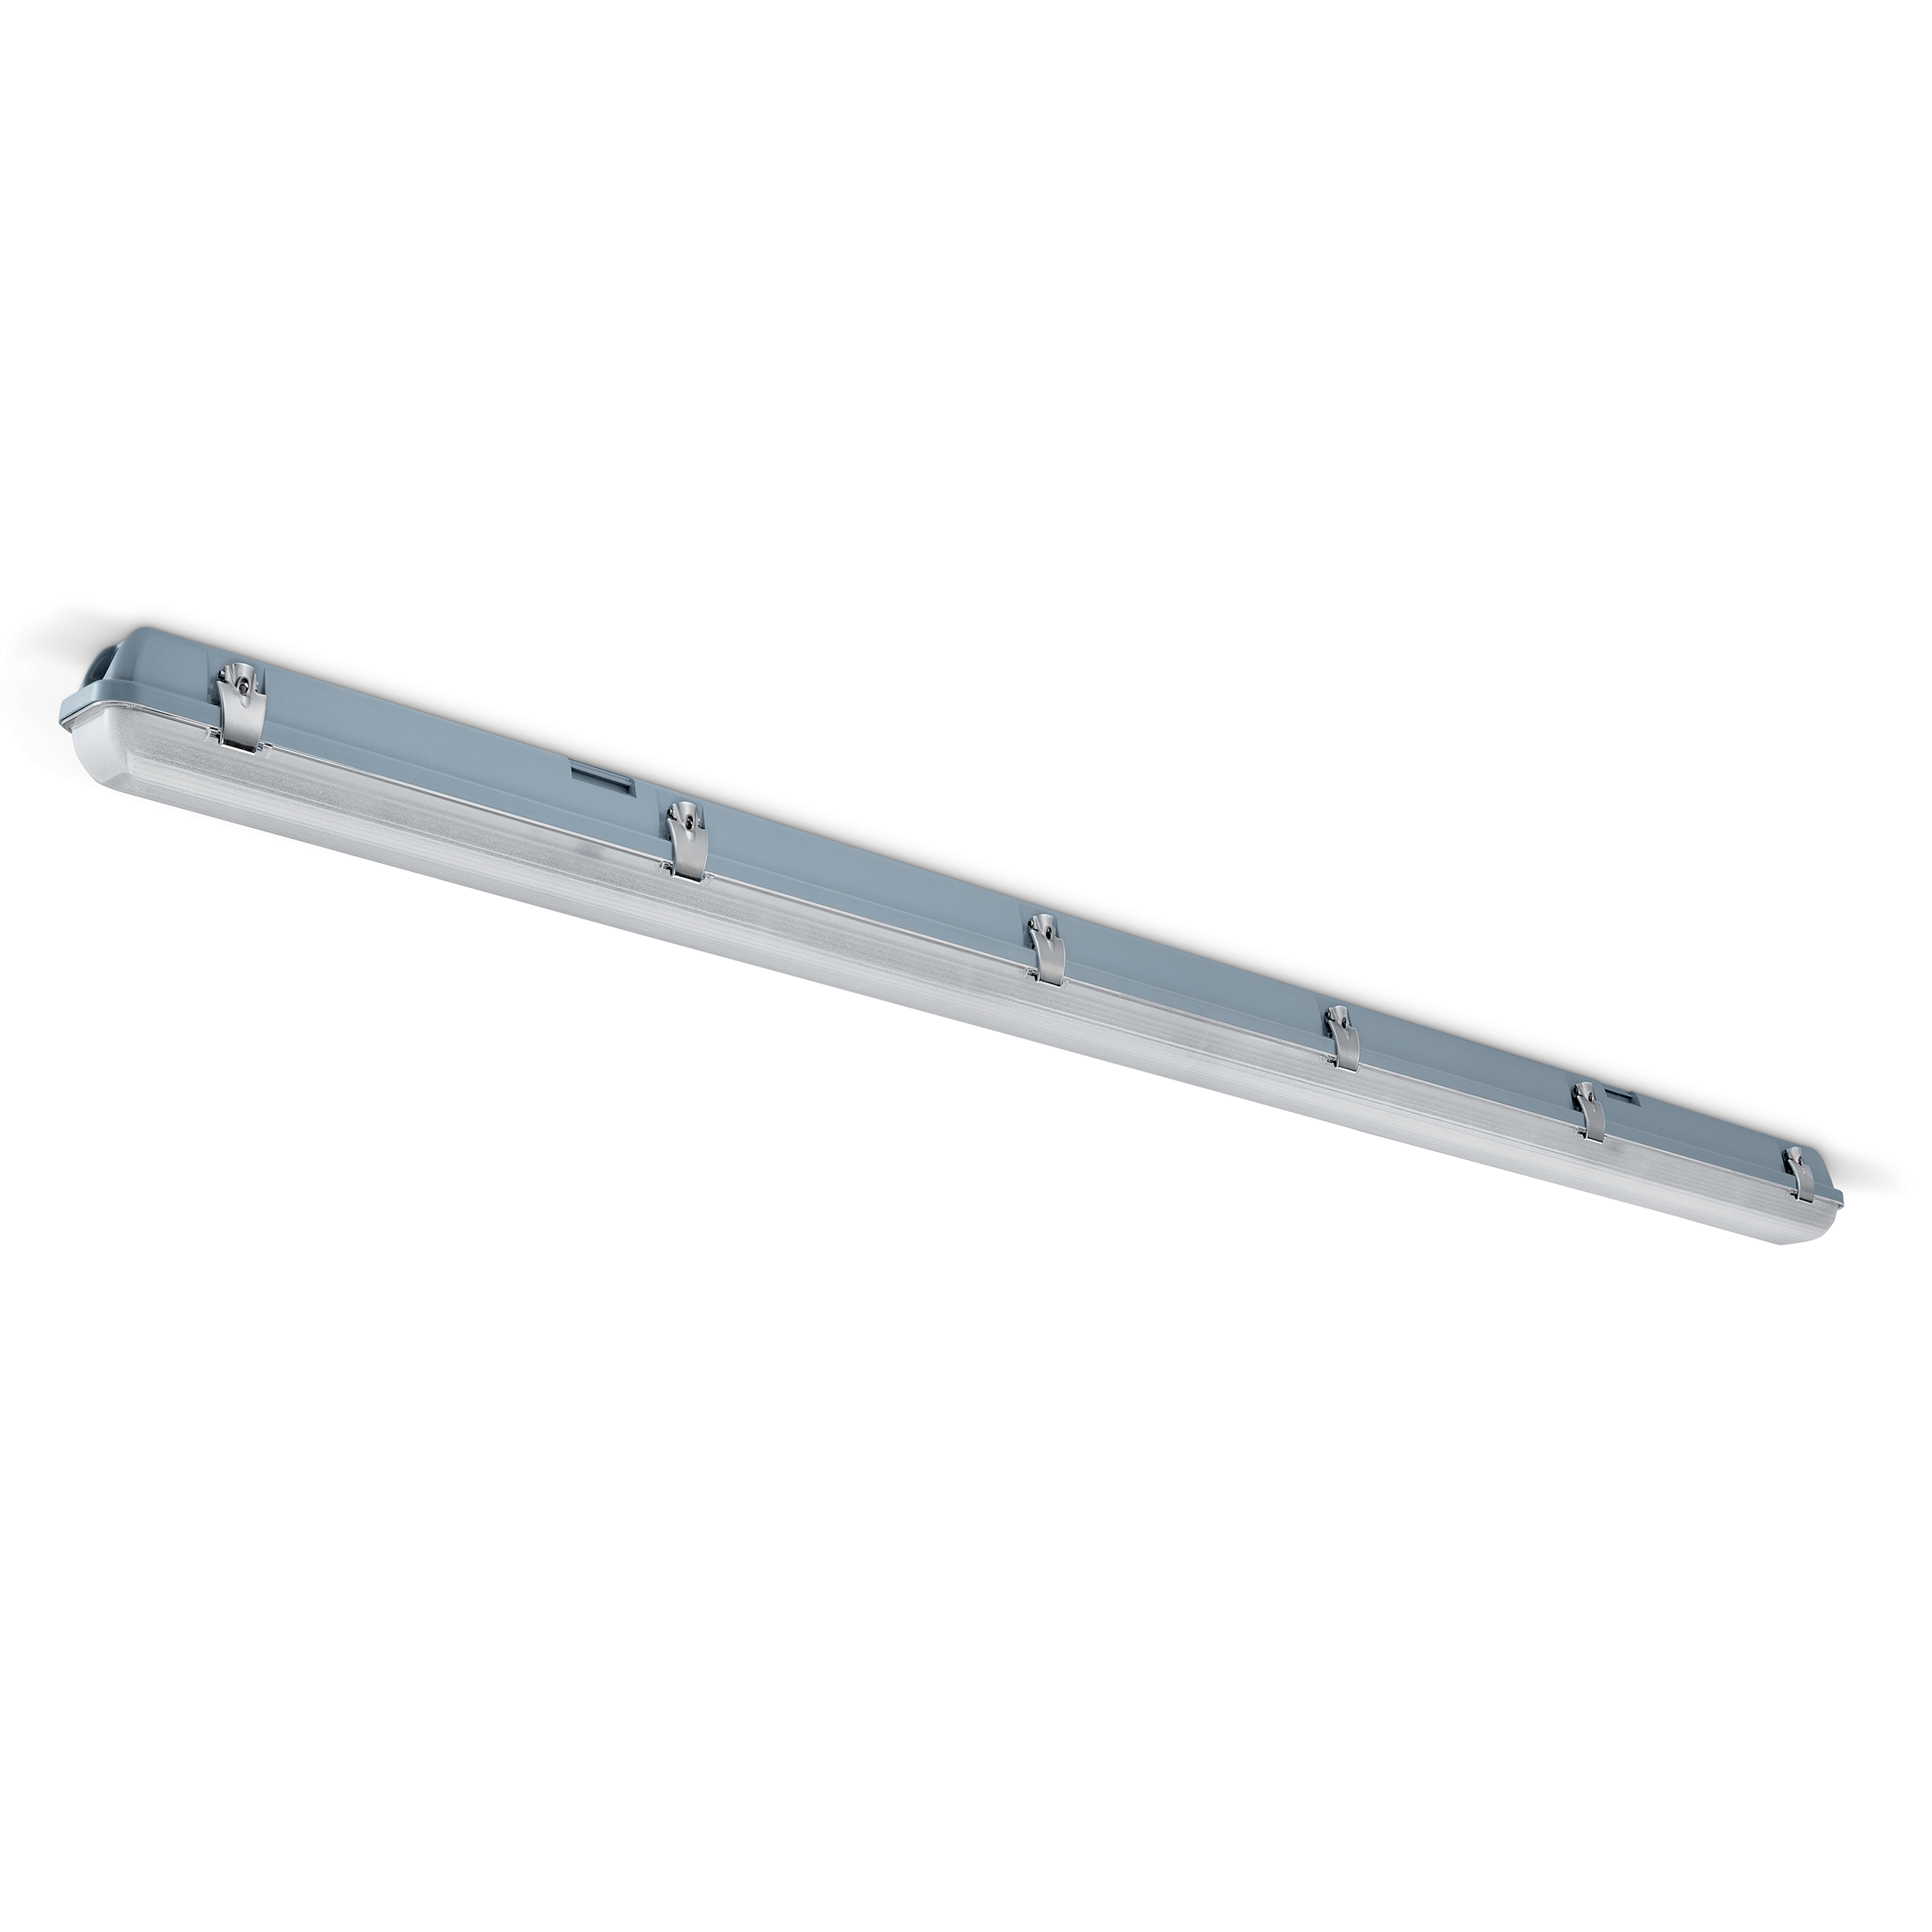 JCC ToughLED 35W LED Batten 6ft Single White Opal IP65 - JC71557WOP